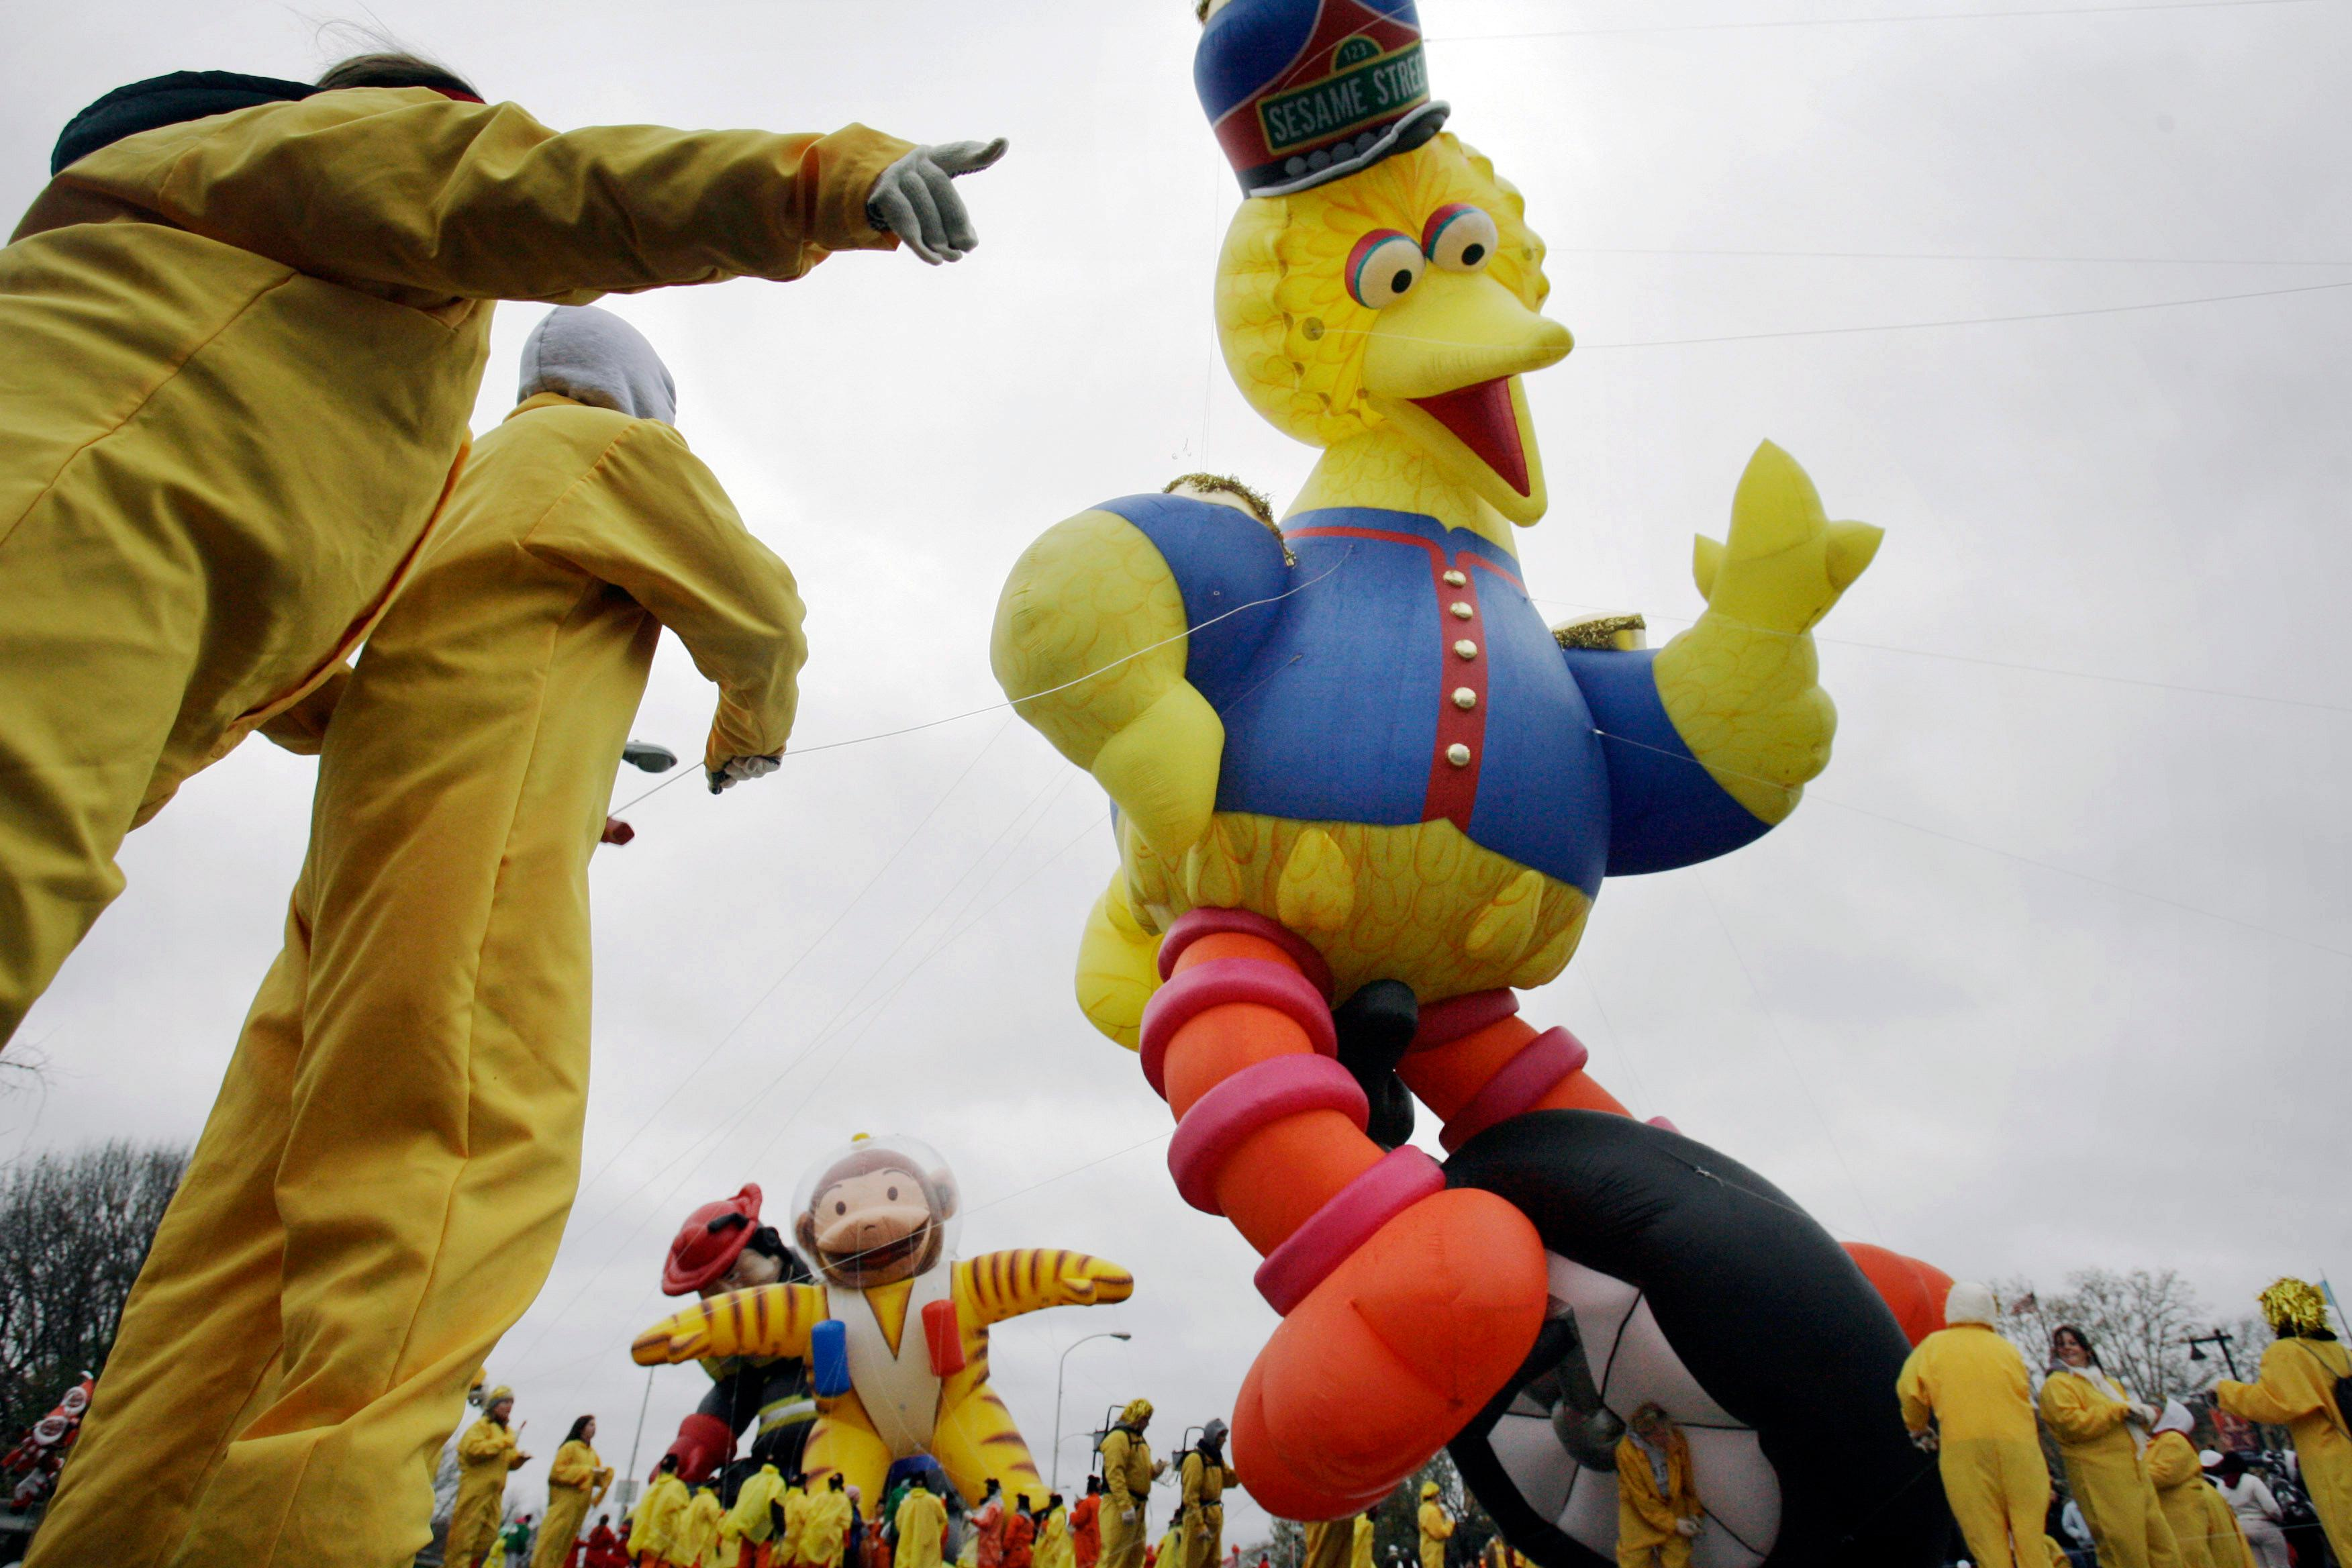 FILE - In this Nov. 23, 2006, file photo, the Sesame Street Big Bird balloon sways in the wind during the annual Thanksgiving Day Parade in Philadelphia.{ } (AP Photo/Matt Rourke, File)